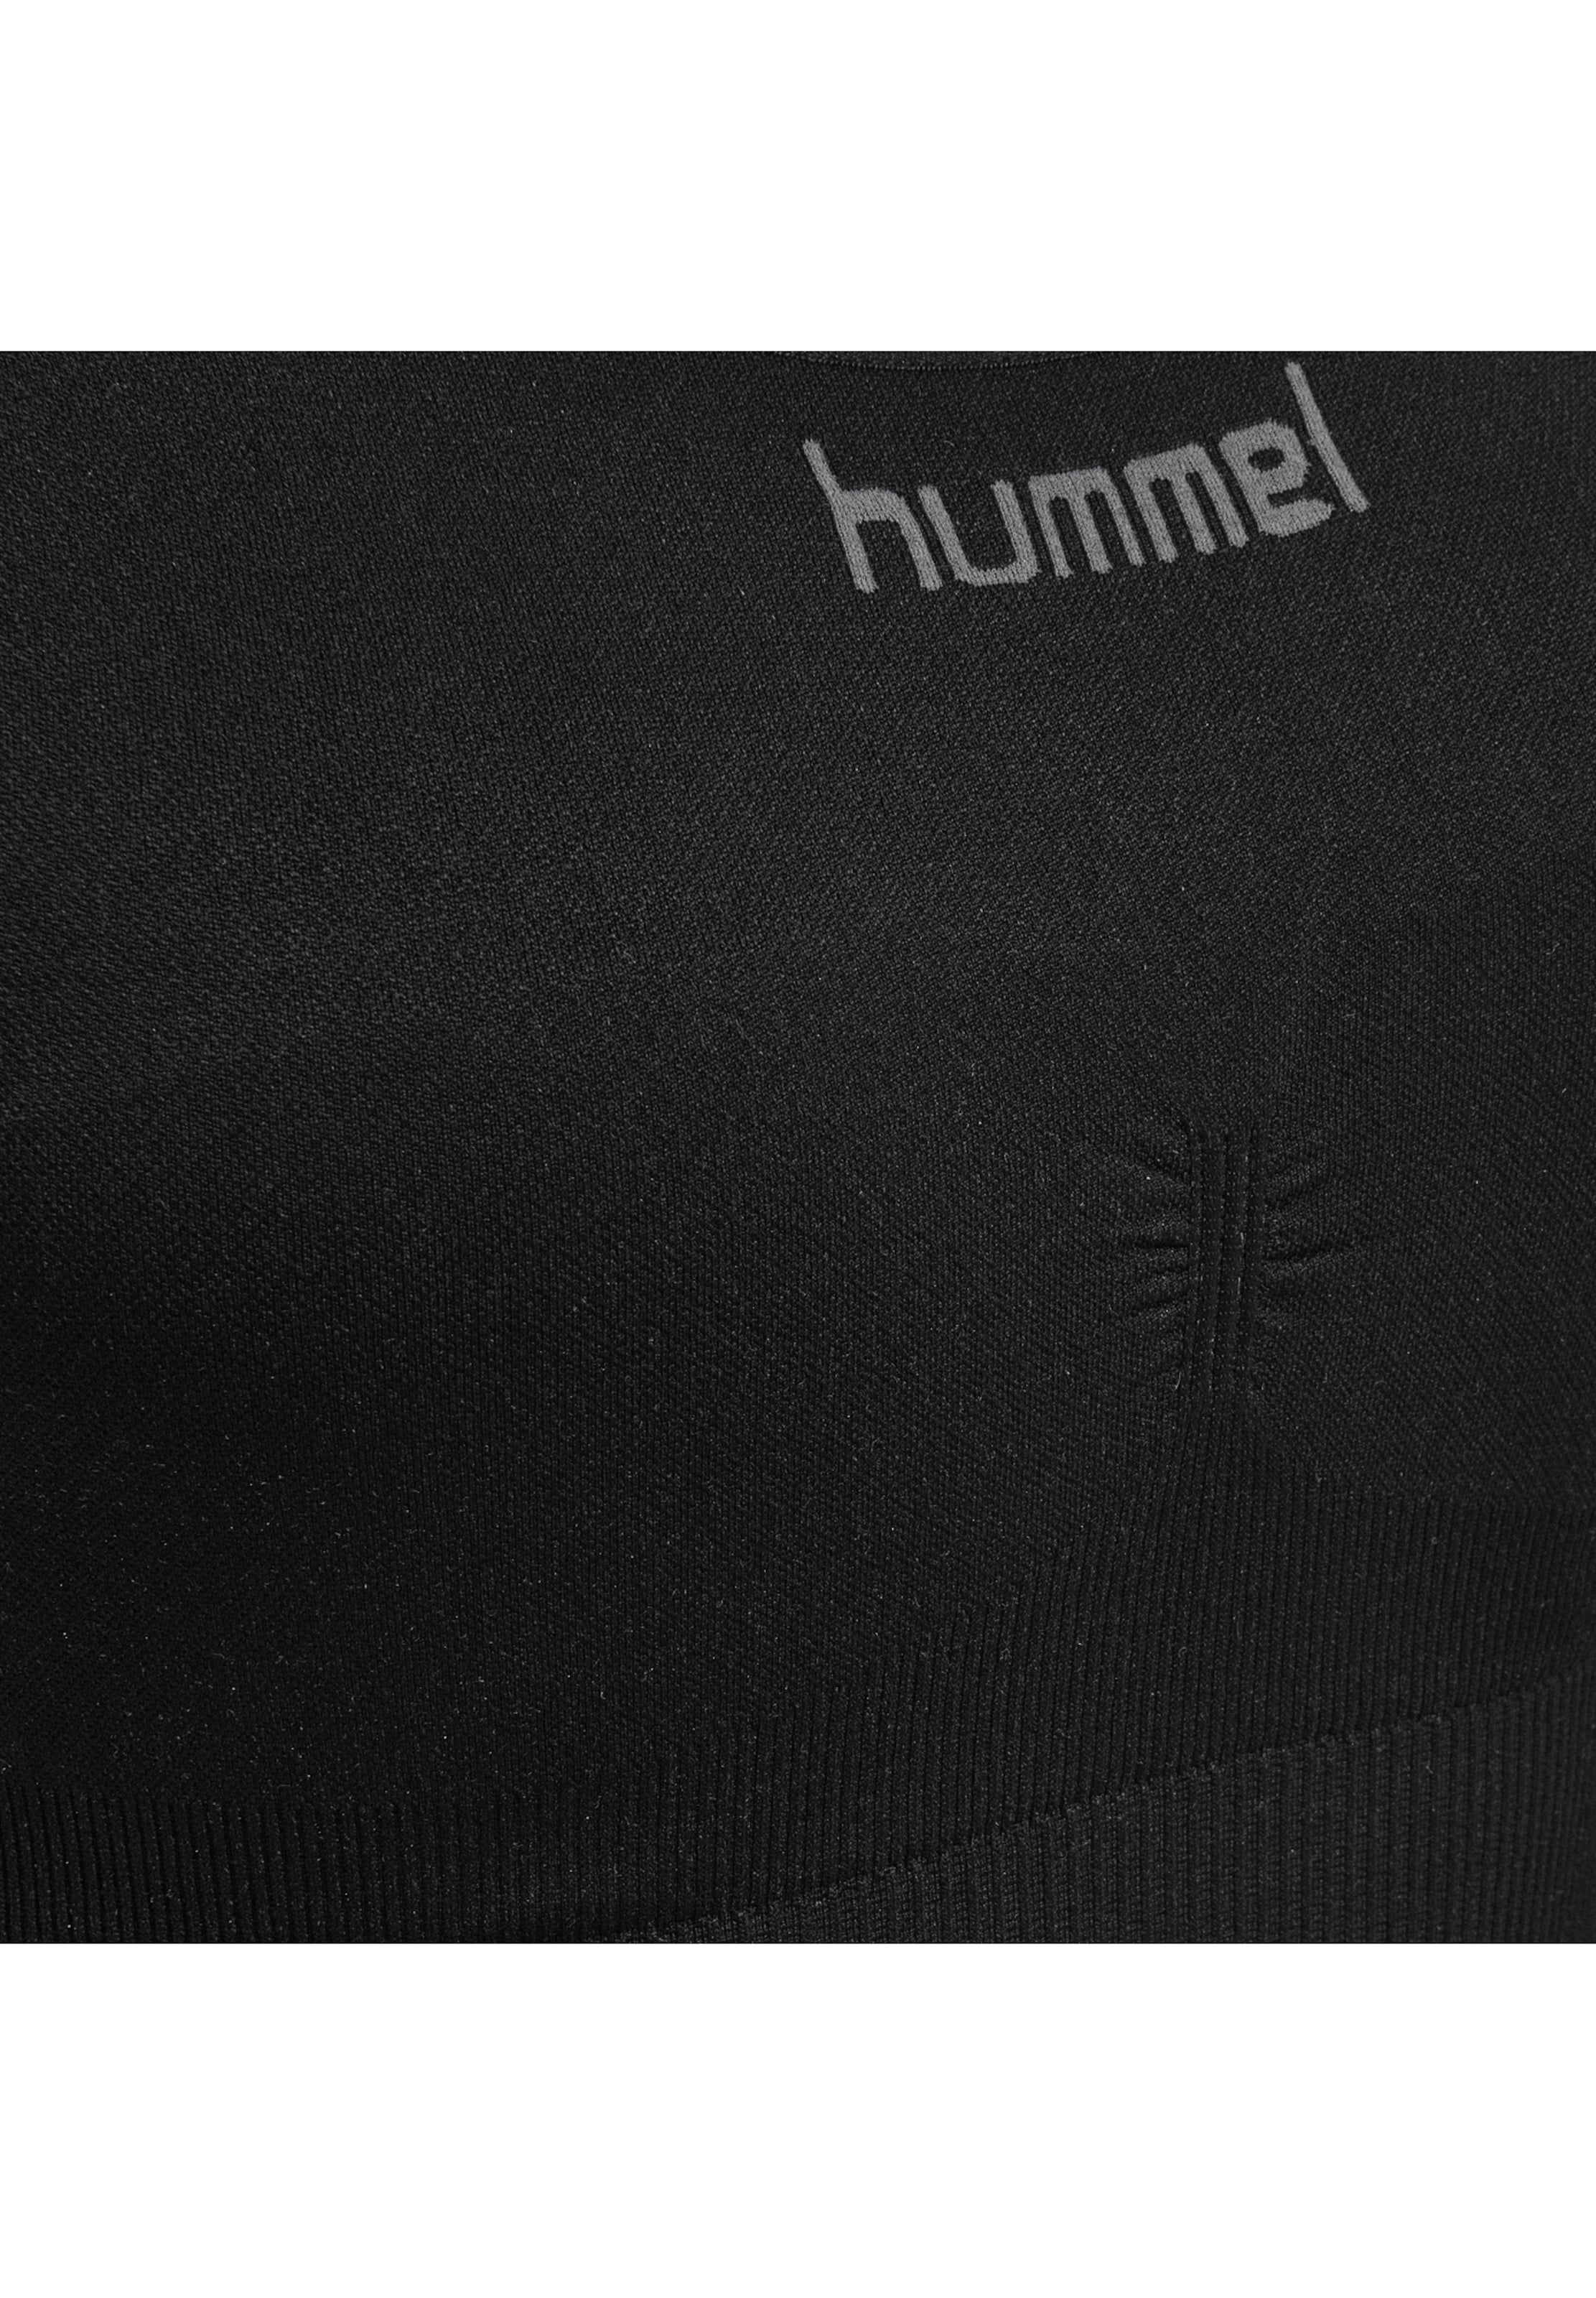 Hummel Sports Bra in schwarz